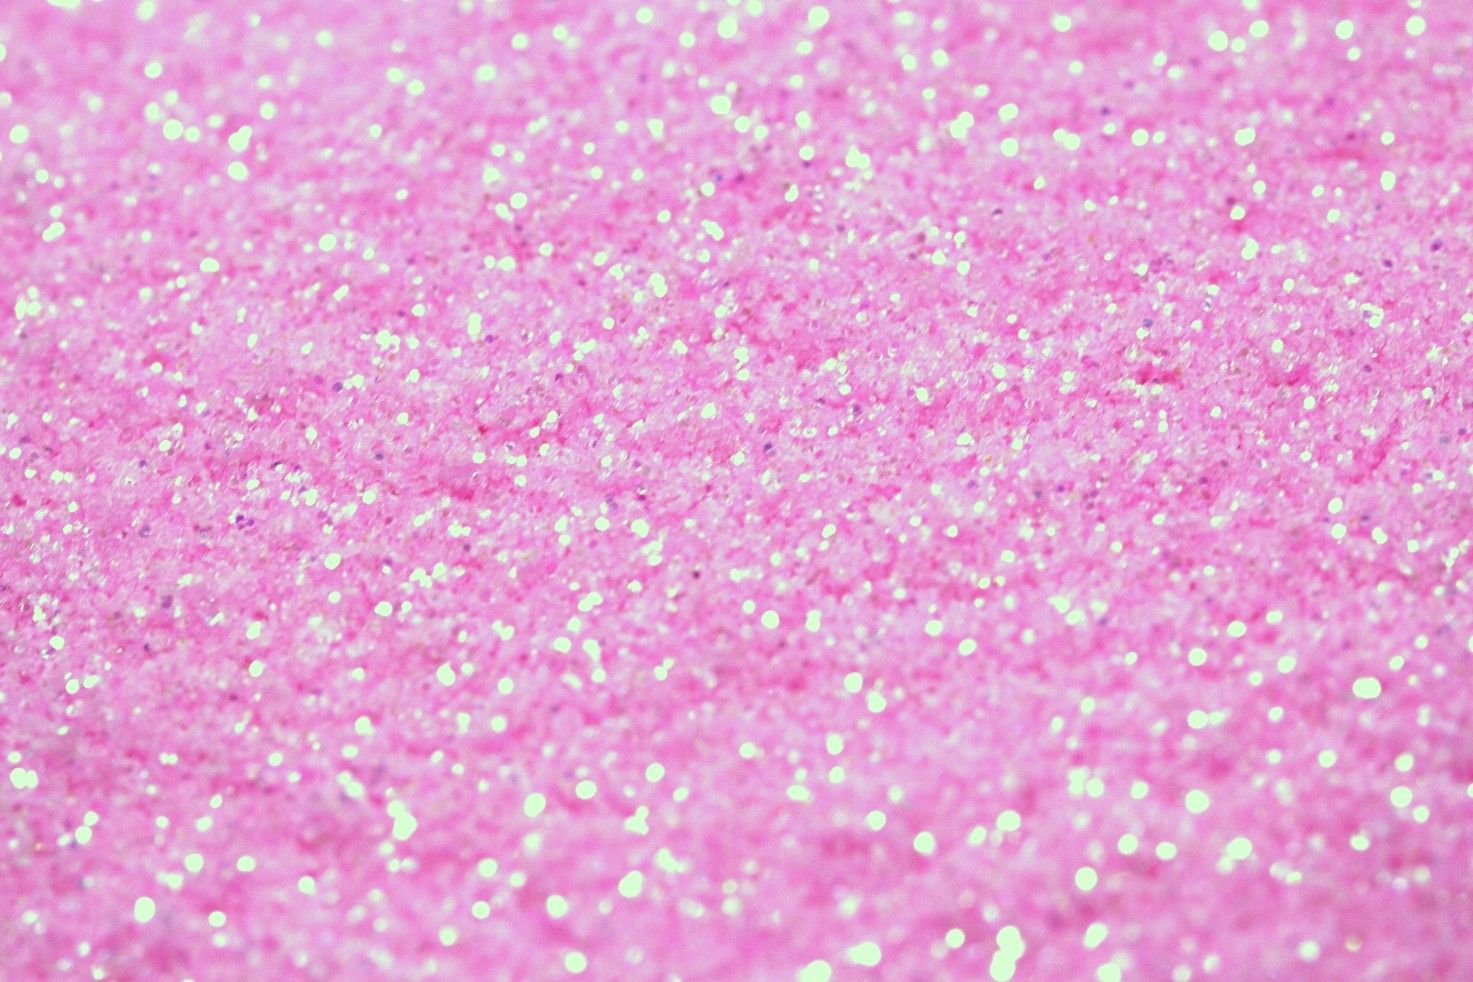 1473x982 Free download Pink Glitter Wallpaper HD Wallpapers Pretty ...